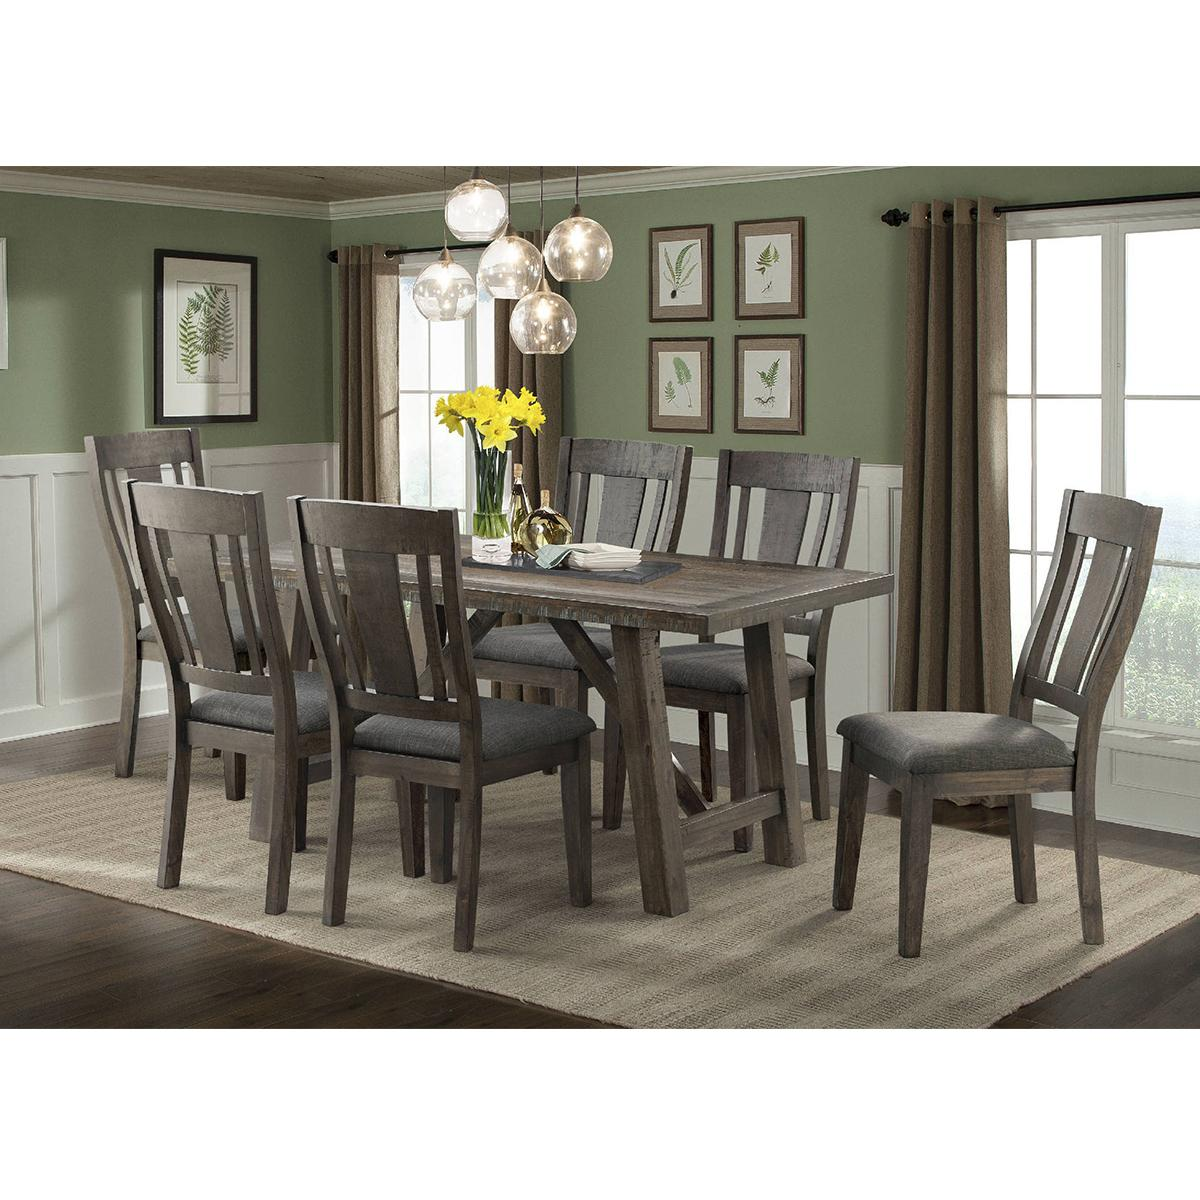 Mayberry Hill Cash 7 Piece Dining Set In Rustic Distressed Espresso Nfm Side Chairs Dining 7 Piece Dining Set Dining Table